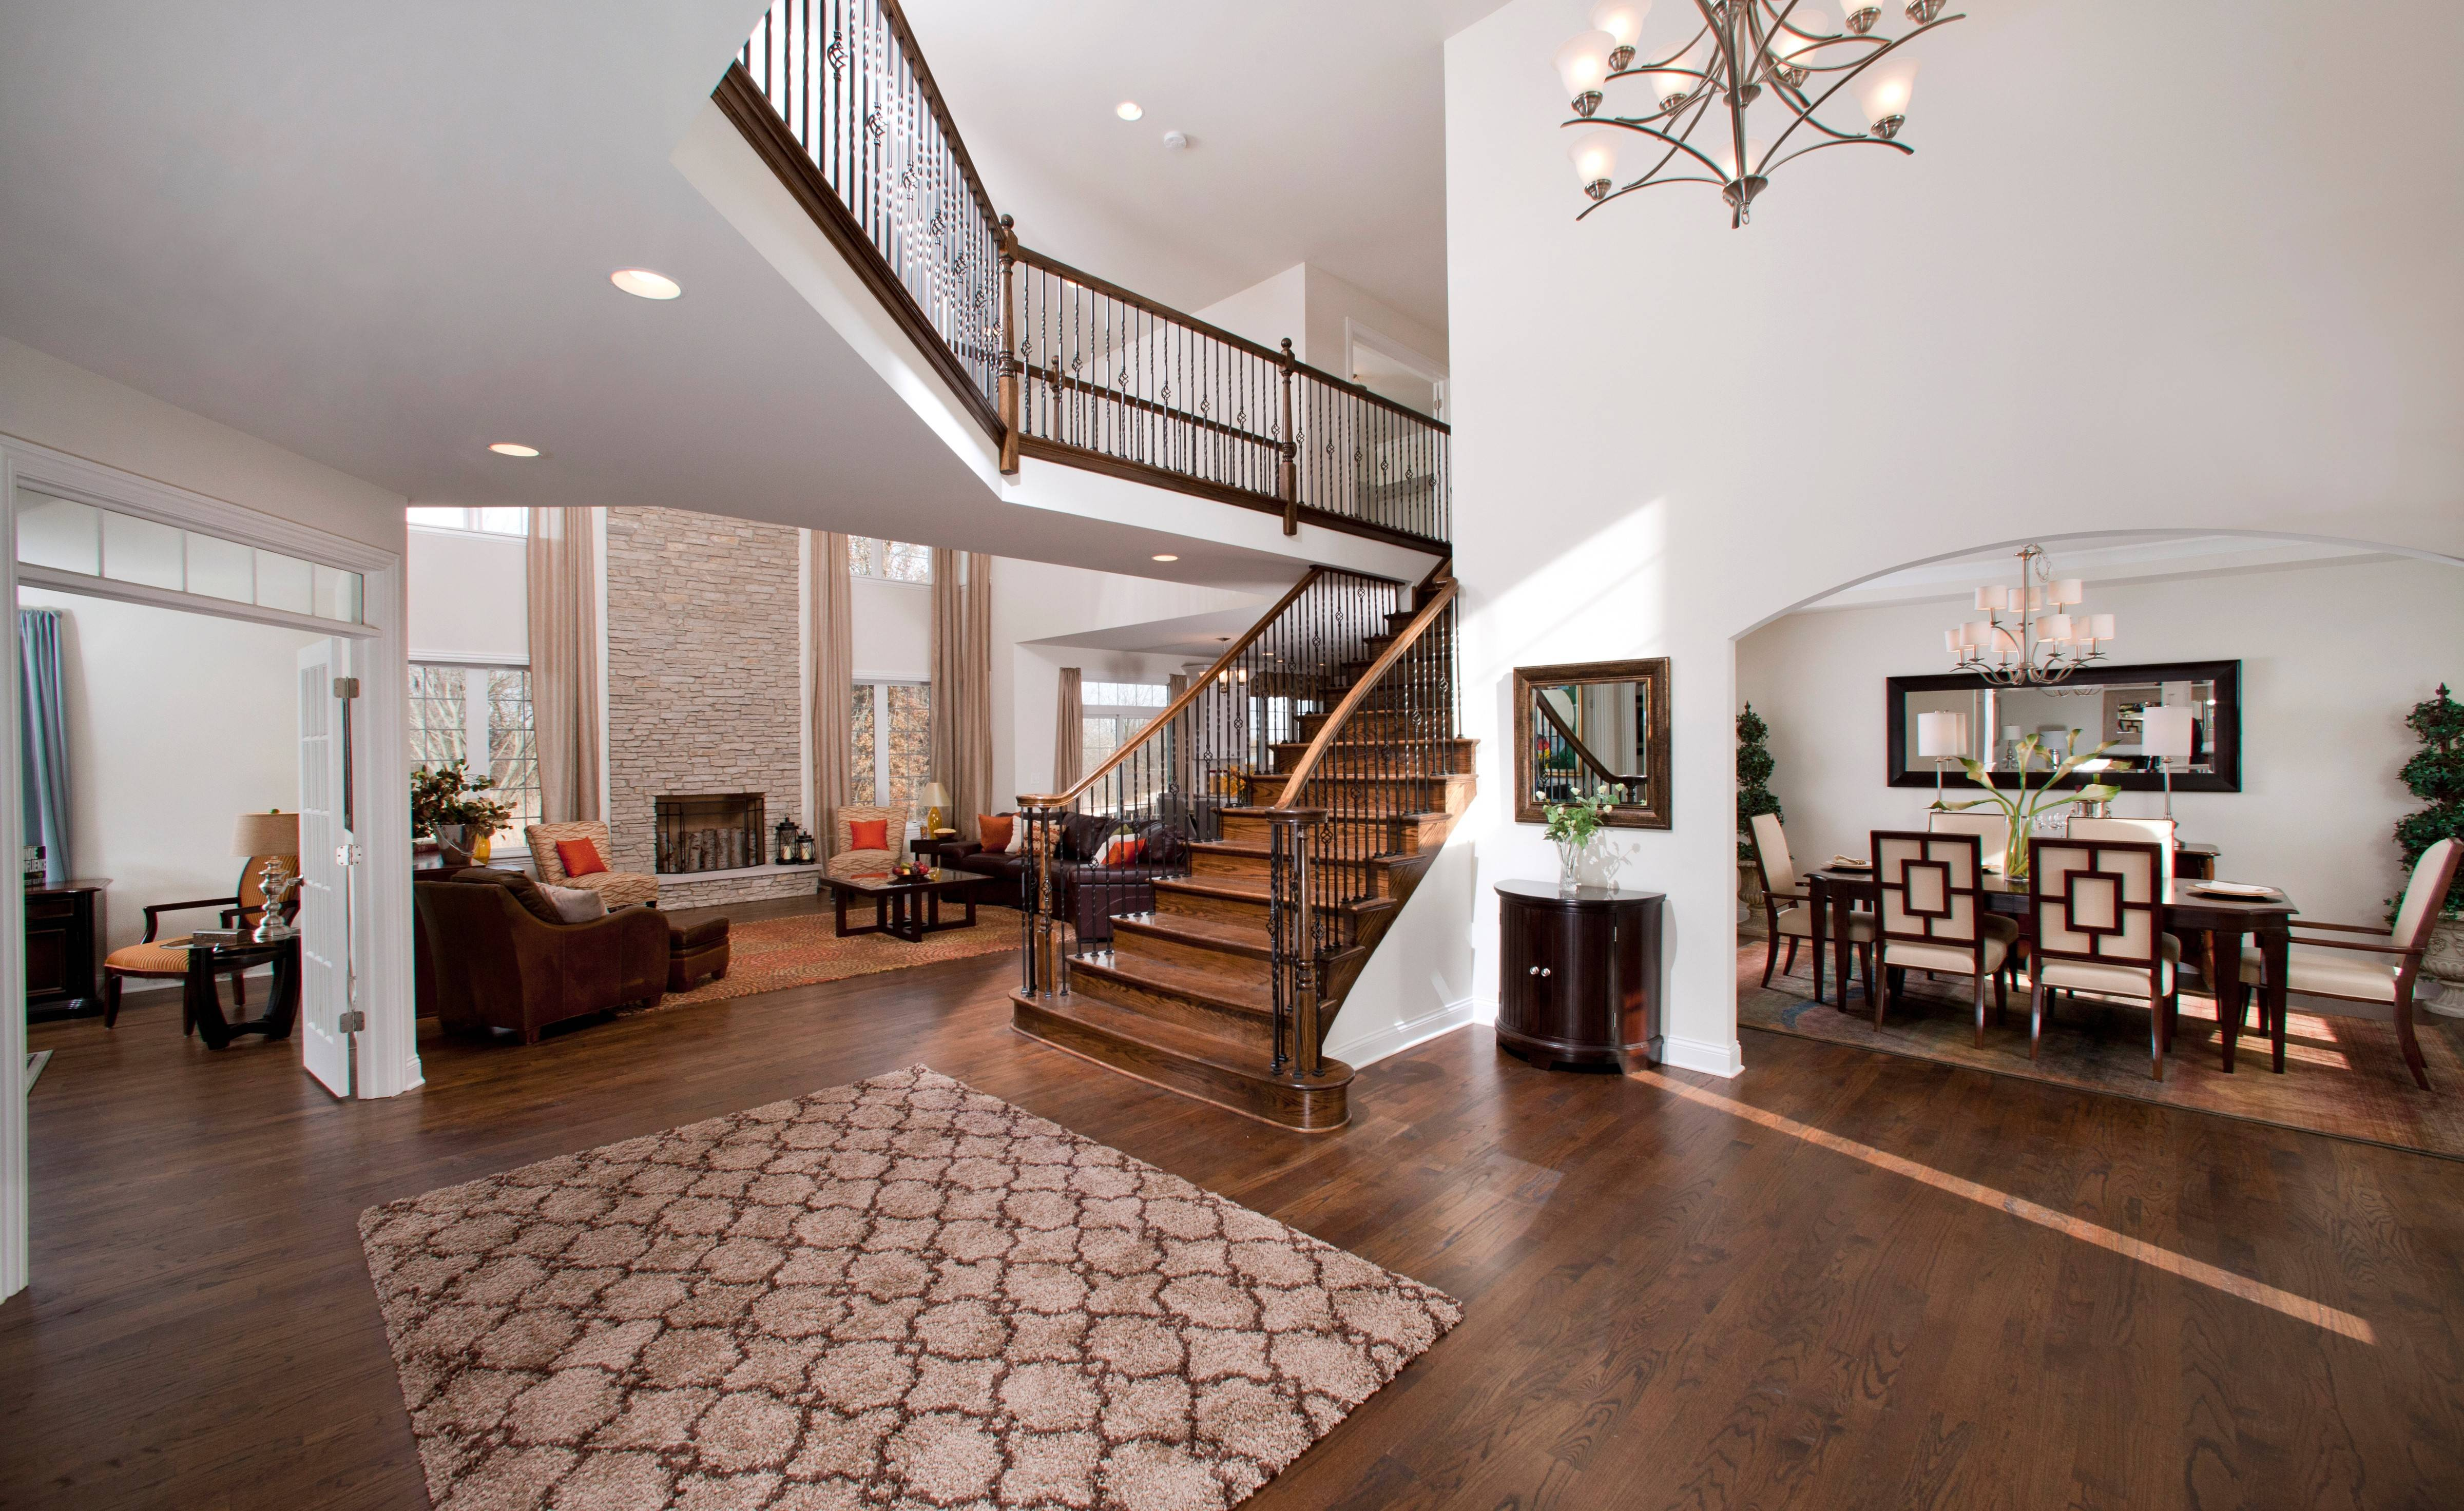 A grand staircase and open layout has a great impact on guests when they enter a new home.